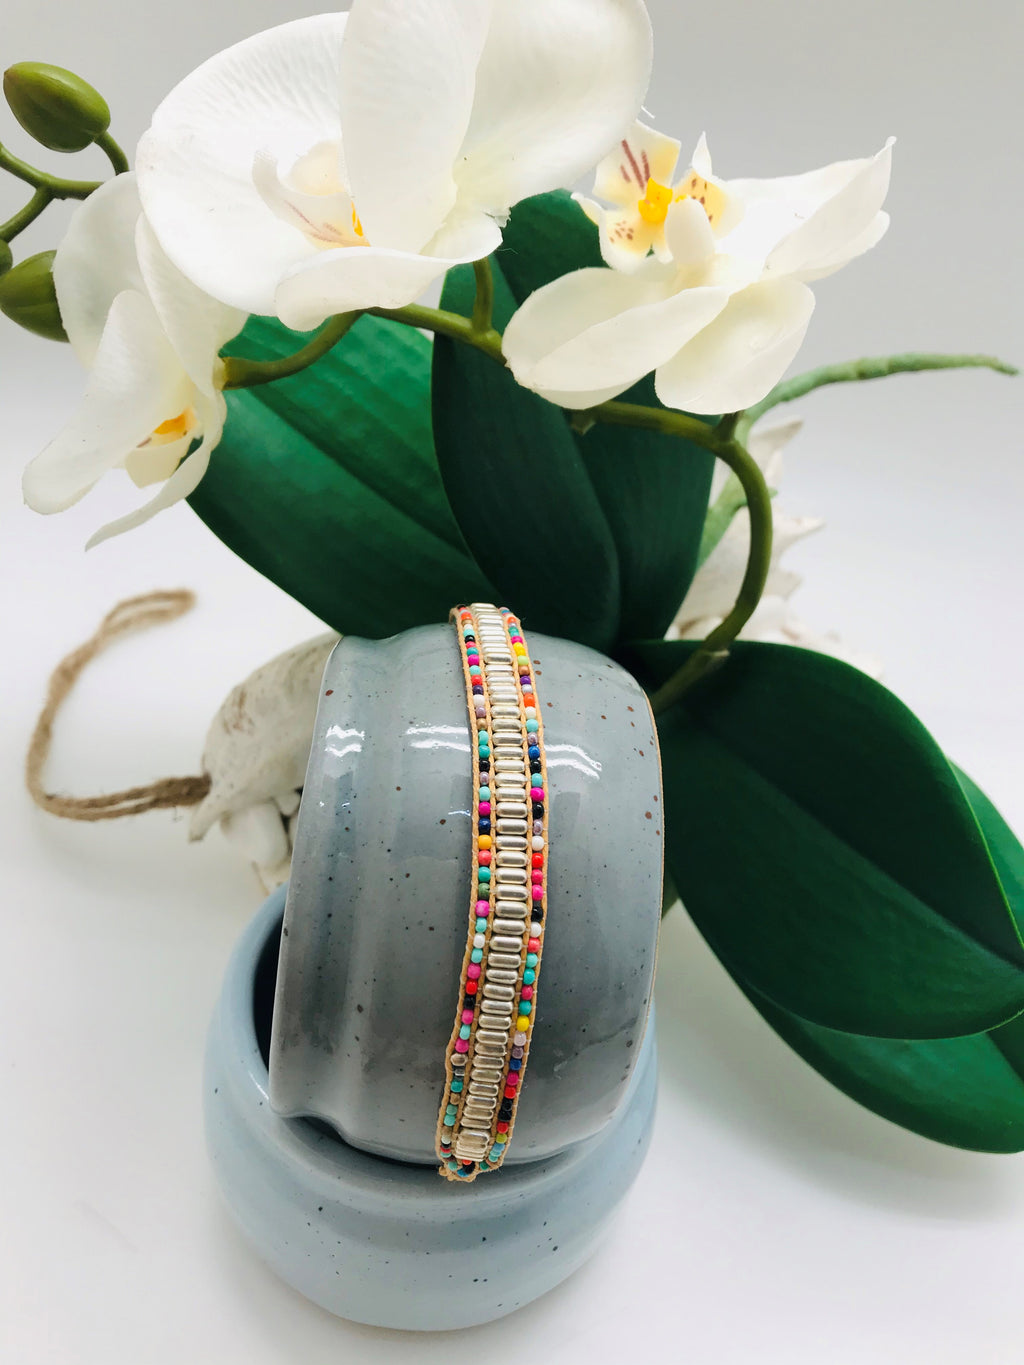 Colorful and beautiful bracelets